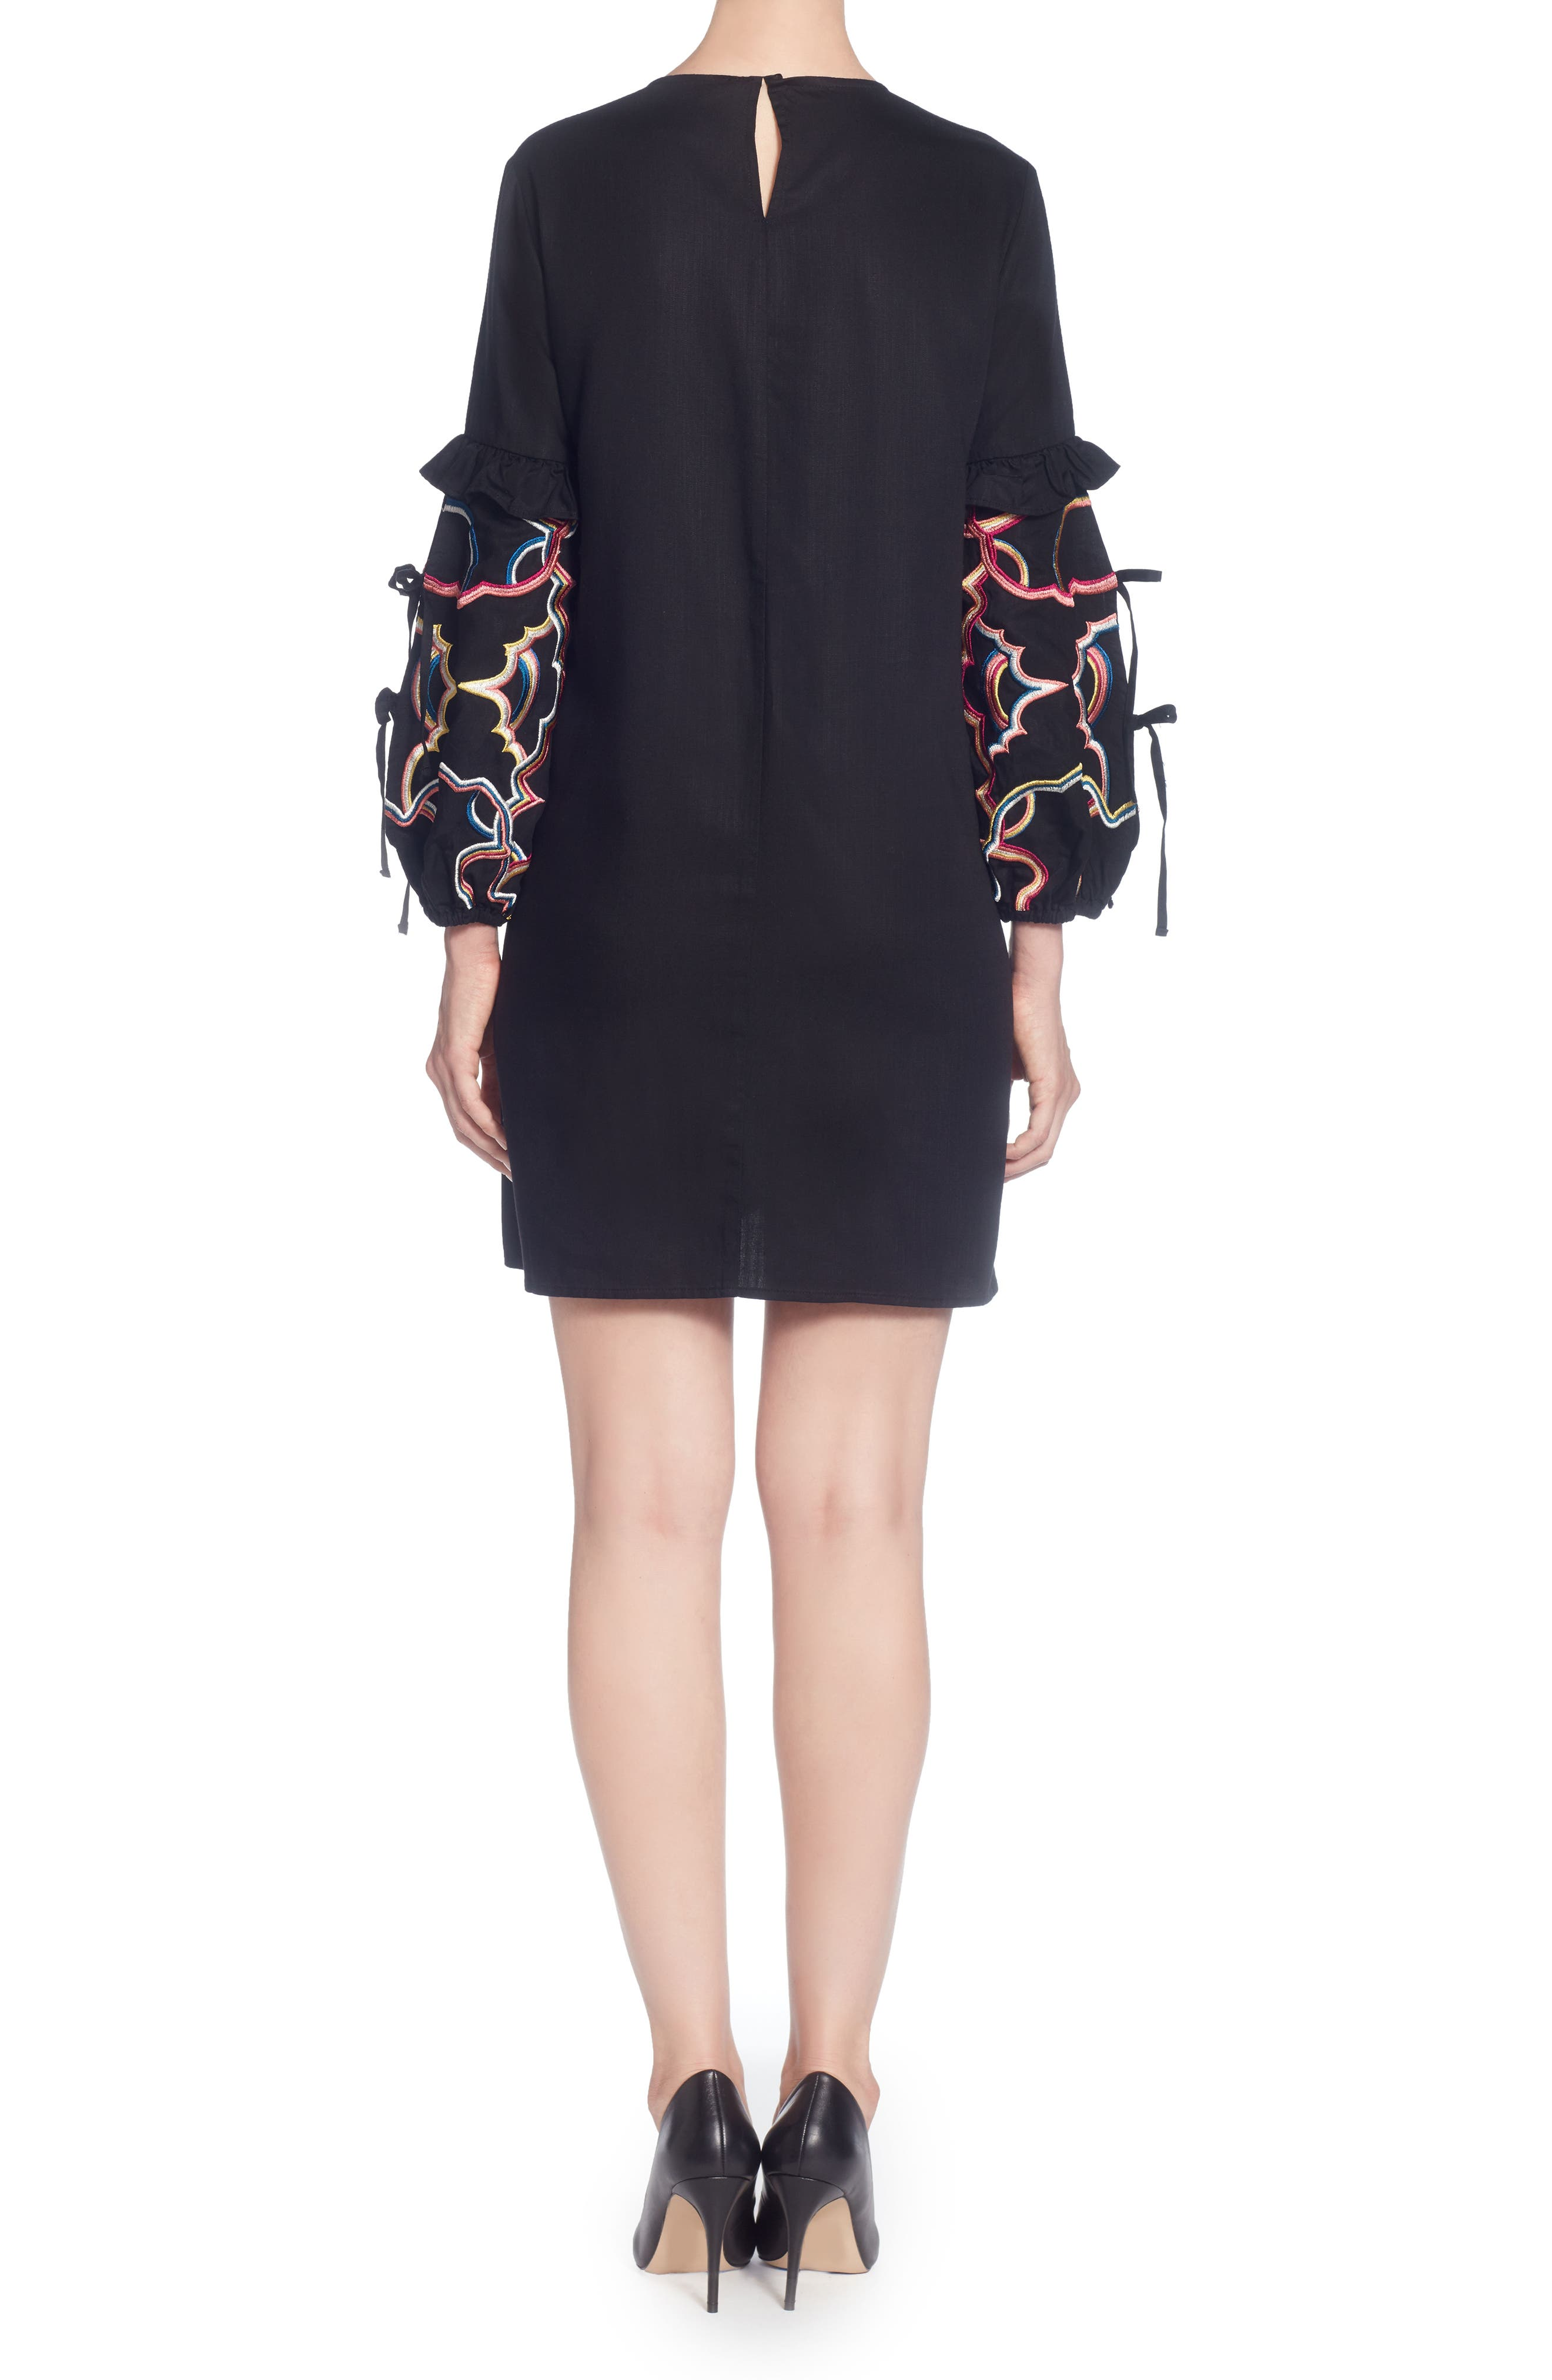 Dahl Embroidered Sleeve Dress,                             Alternate thumbnail 2, color,                             001